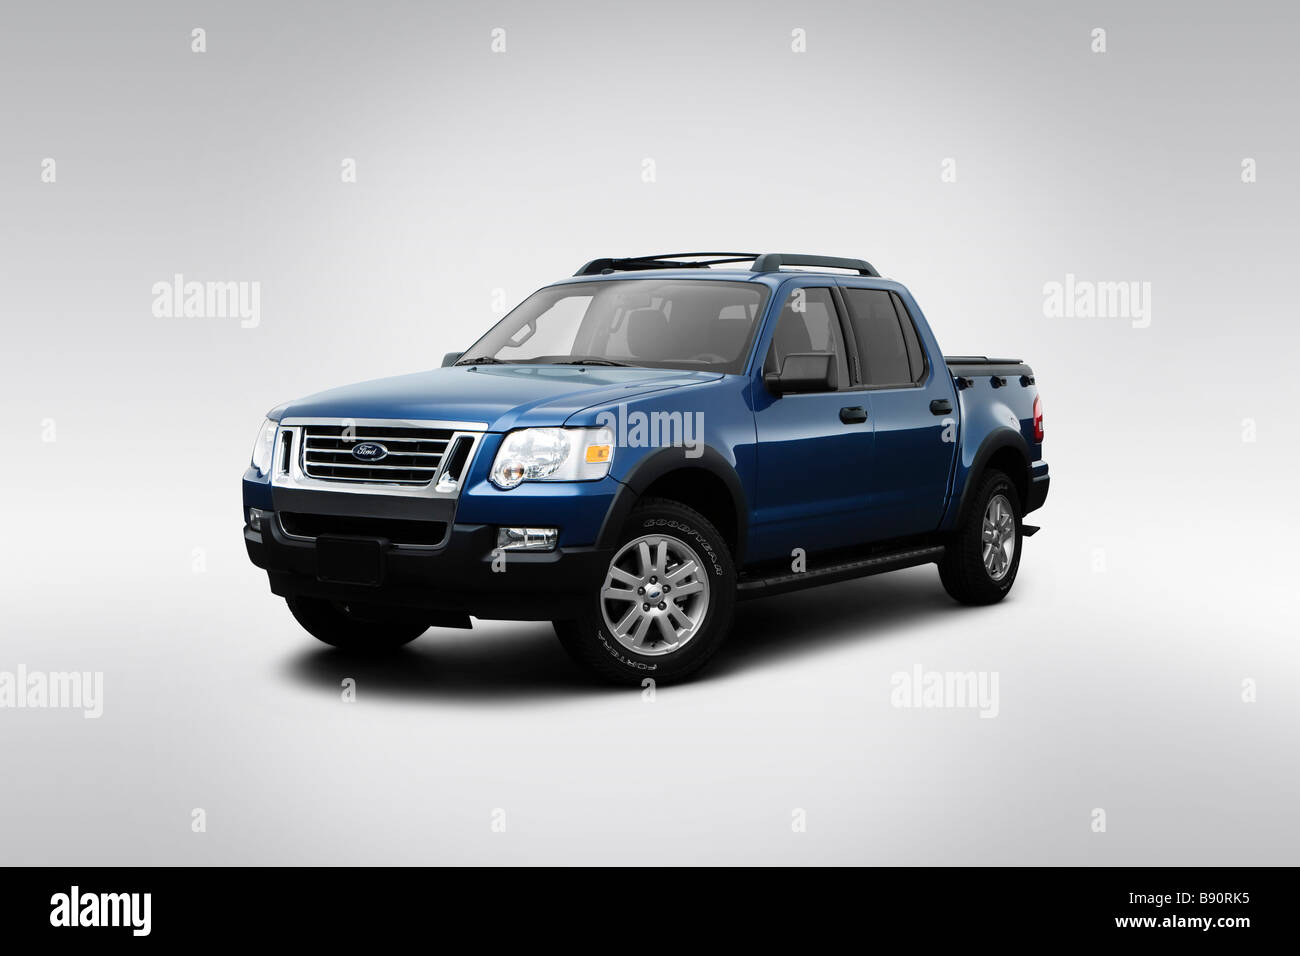 2009 ford explorer sport trac xlt in blue front angle view